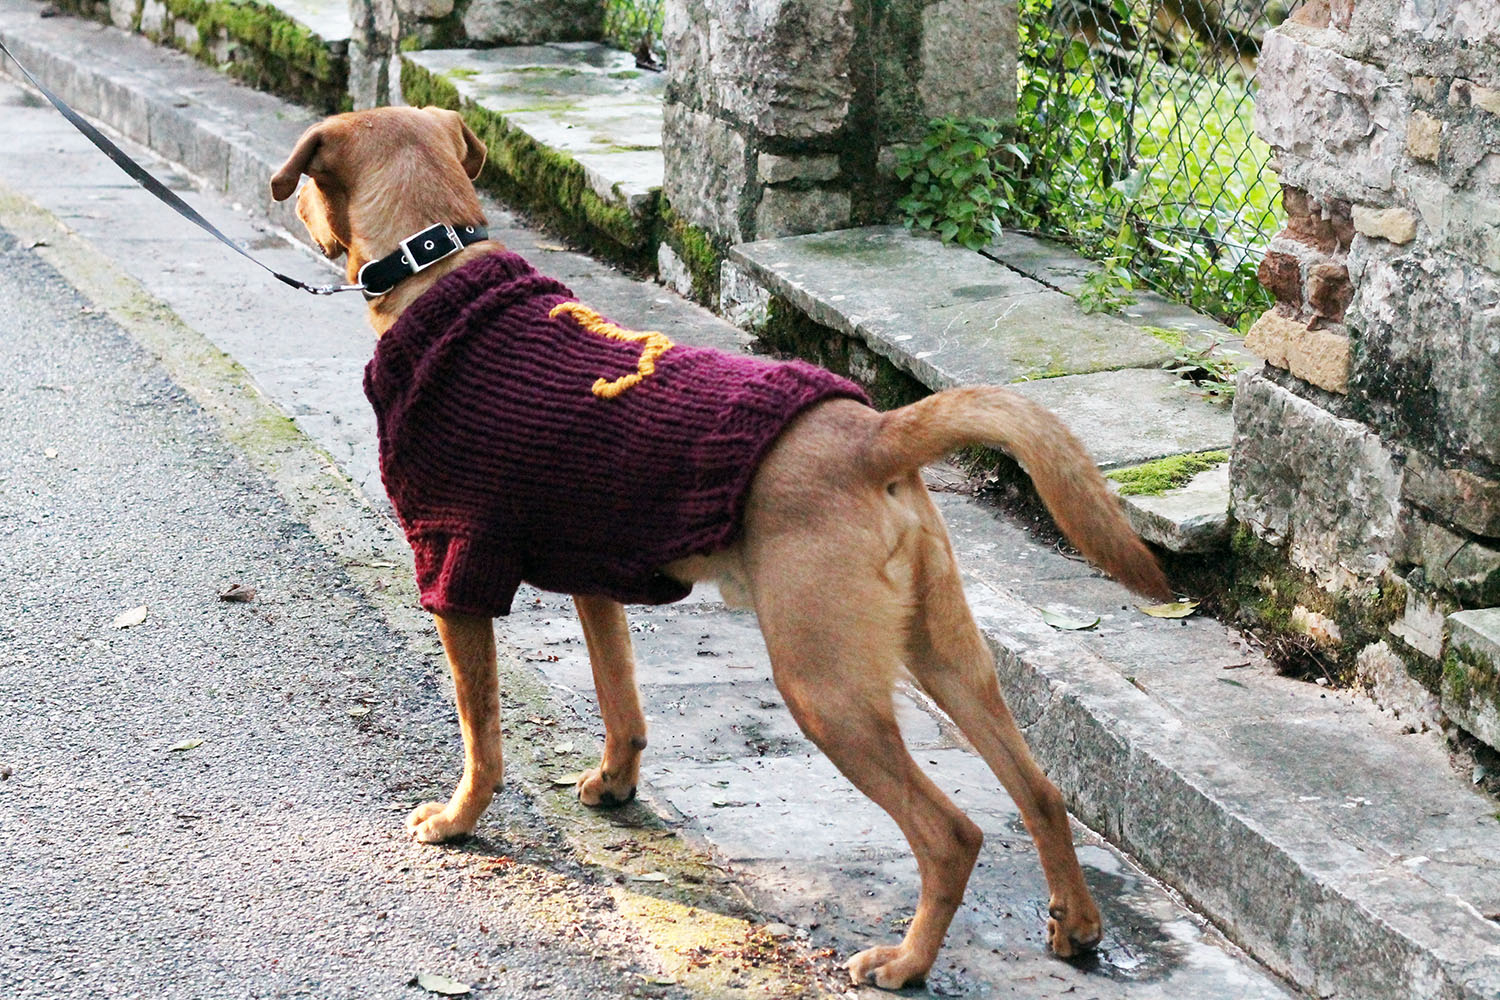 Knitted Dog Coat Pattern 19 Dog Sweater And Coat Free Knitting Patterns Guide Patterns